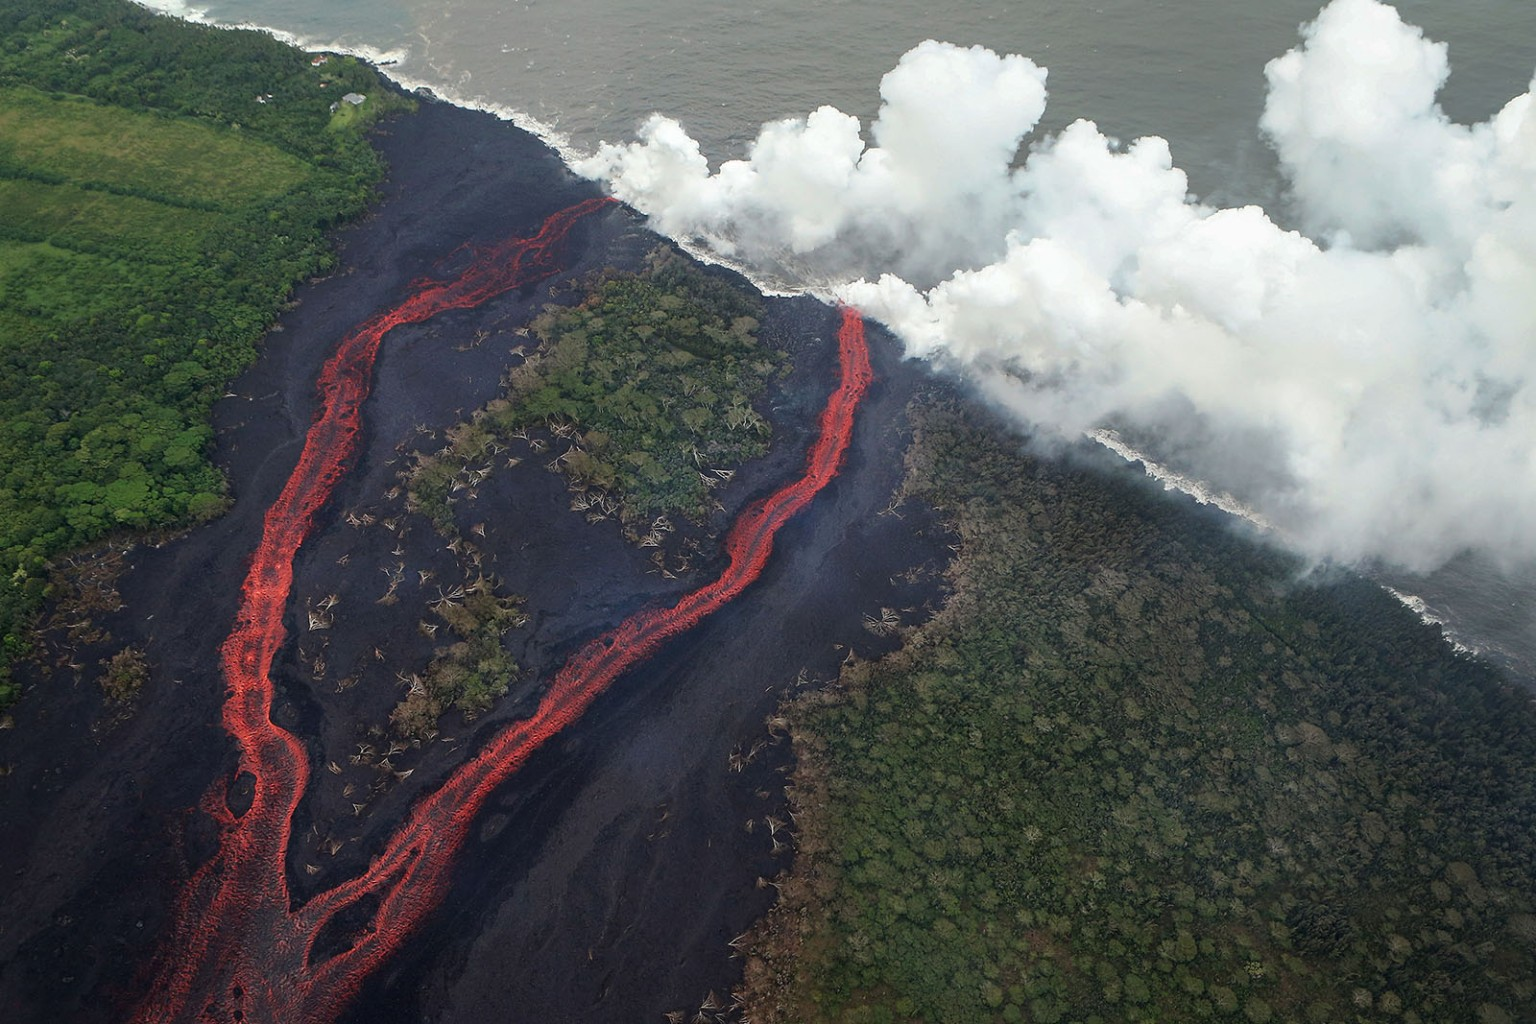 Steam plumes rise as lava hits the Pacific Ocean after flowing from a Kilauea volcano fissure on Hawaii's Big Island near Pahoa on May 21. MARIO TAMA/GETTY IMAGES